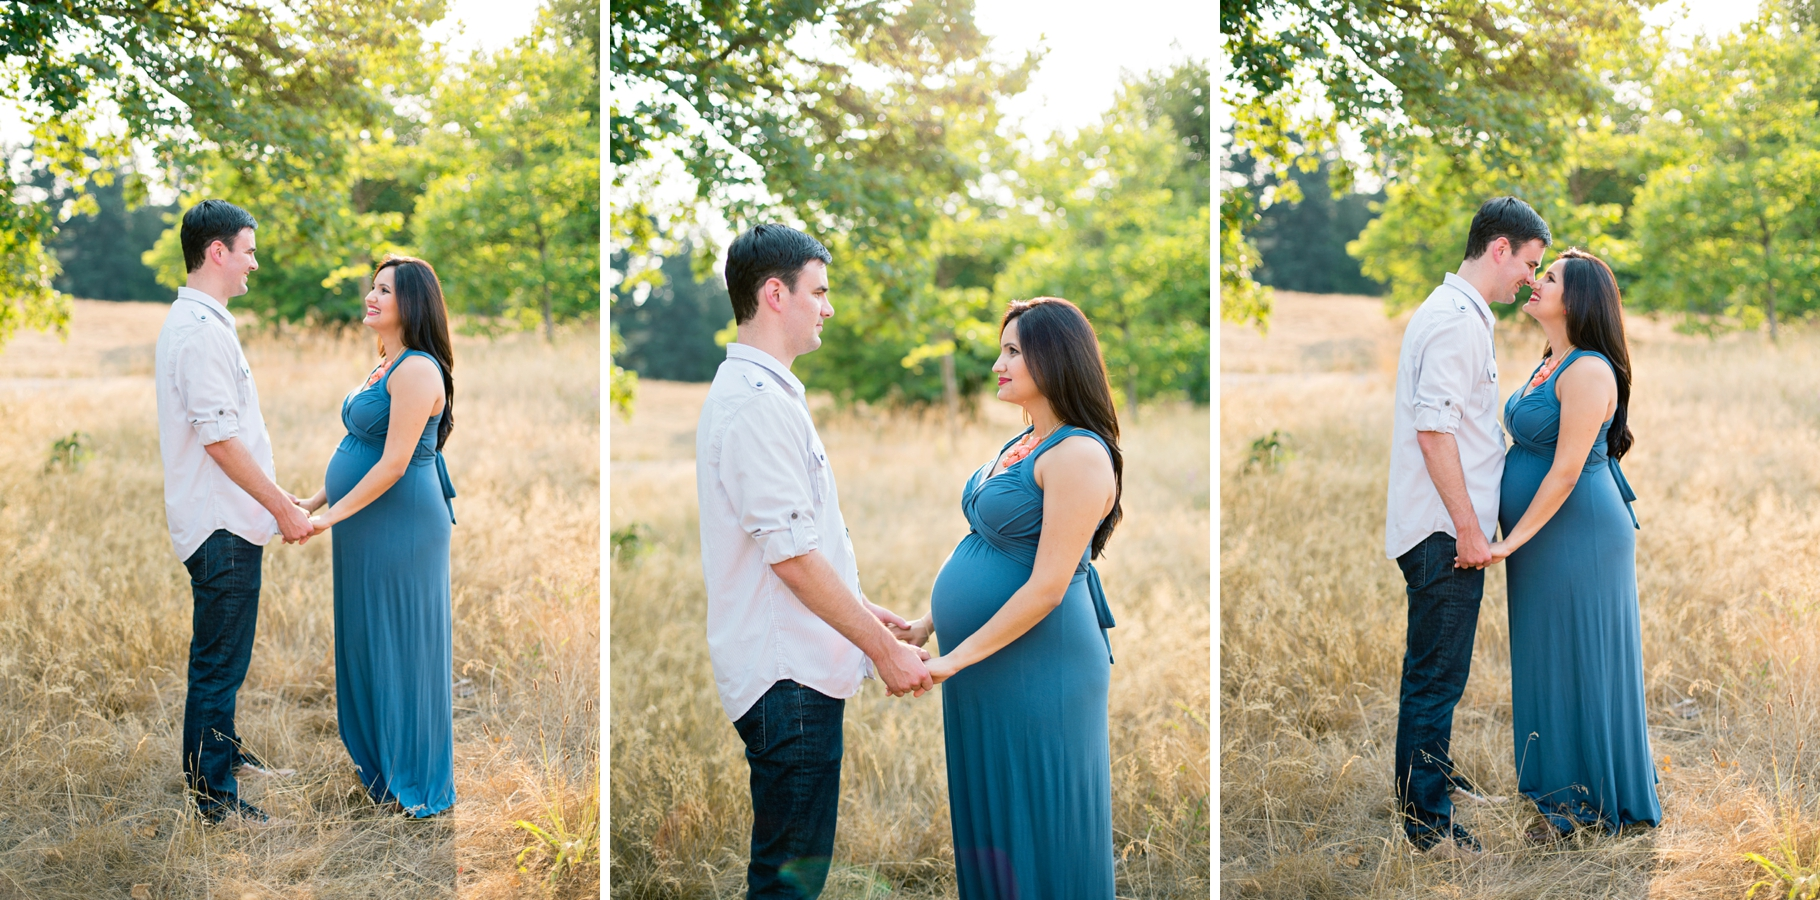 Maternity-Portraits-Photography-Discovery-Park-Seattle-Photographer_0004